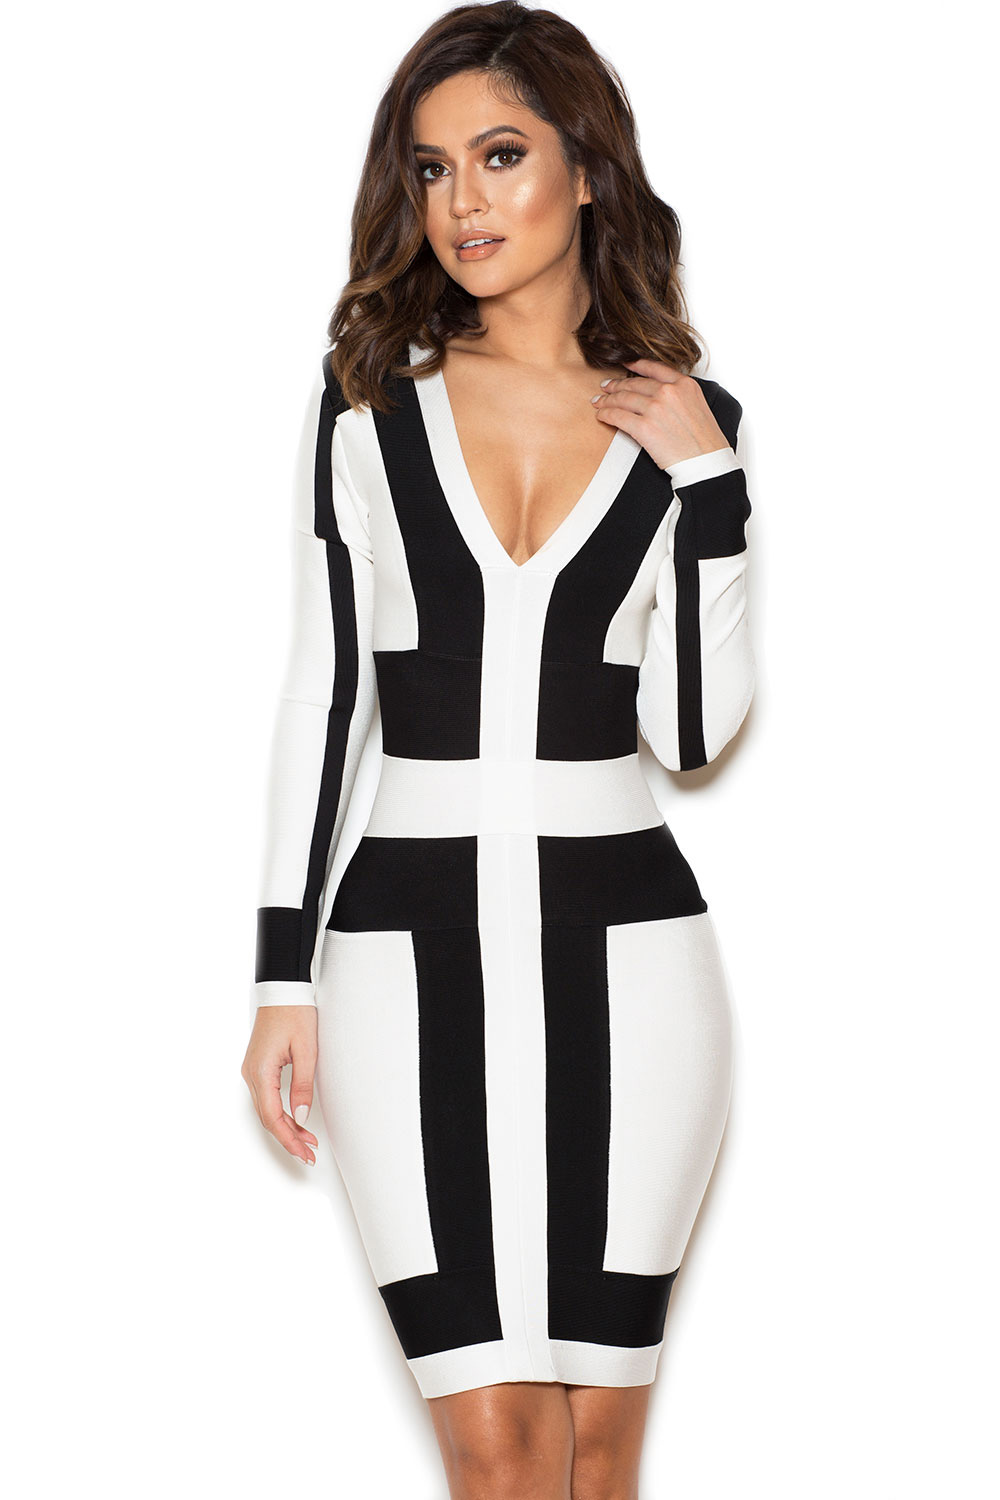 Clothing : Bandage Dresses : 'Michiyo' Black and White Graphic ...